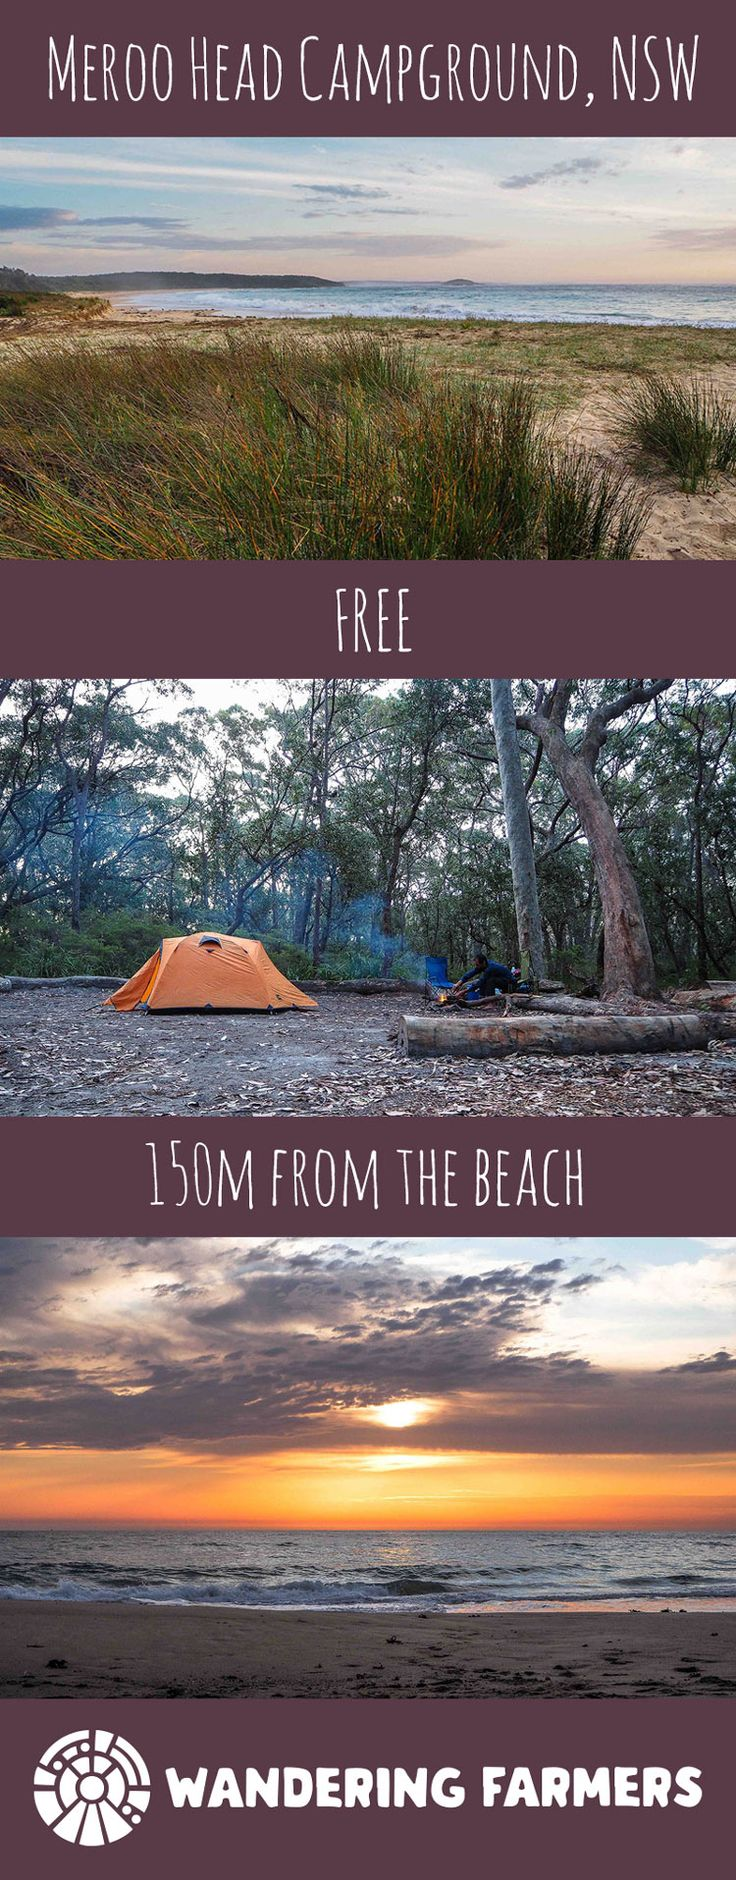 Meroo Head Campground, an amazing FREE beach campground in a NSW National Park.  Located south of Ulladulla #freecampground #australia